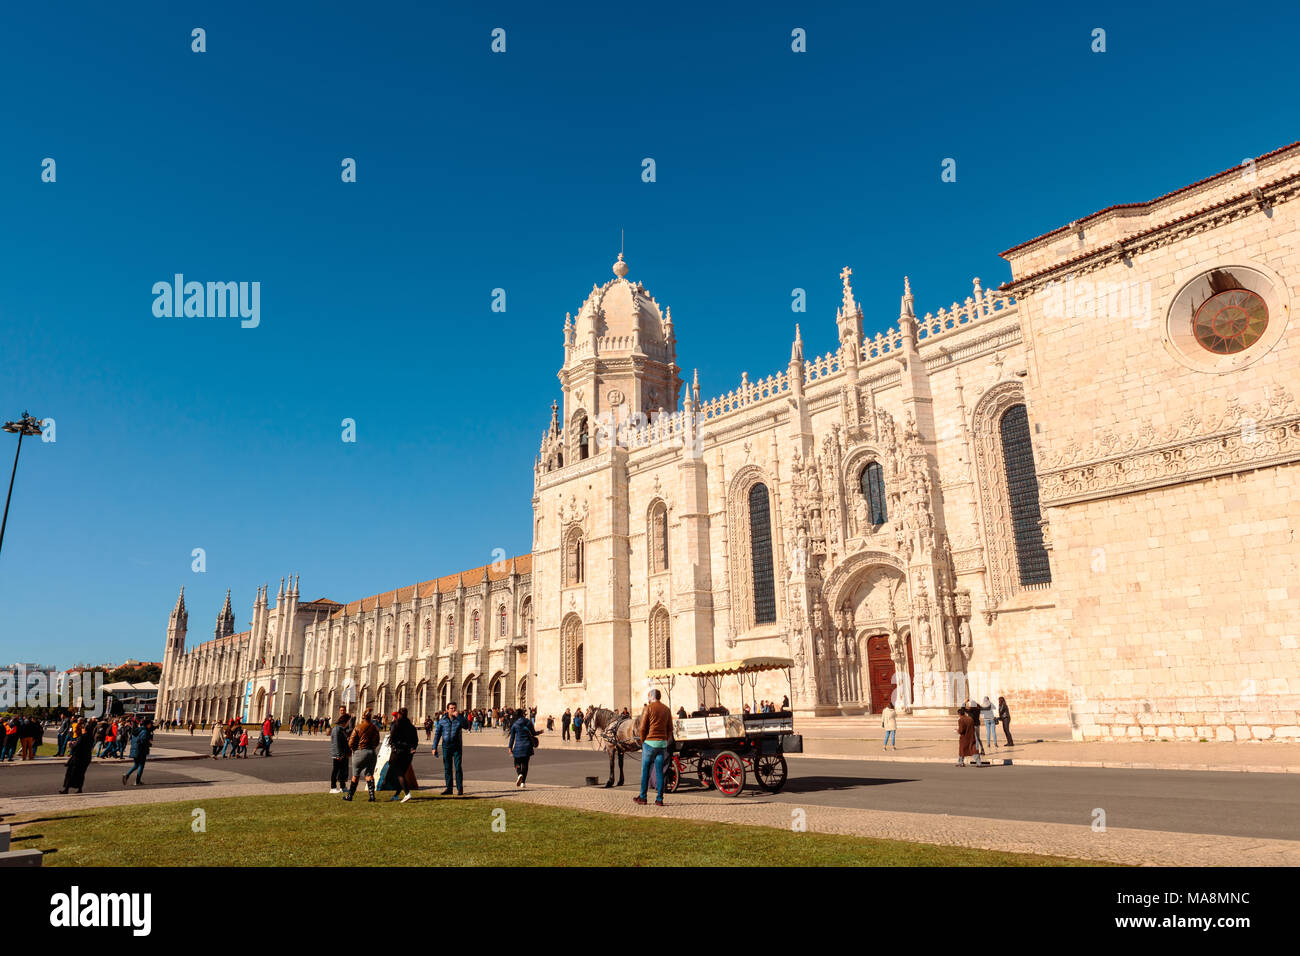 The Mosteiro dos Jeronimos is a highly ornate former monastery, situated in the Belem district of western Lisbon. - Stock Image